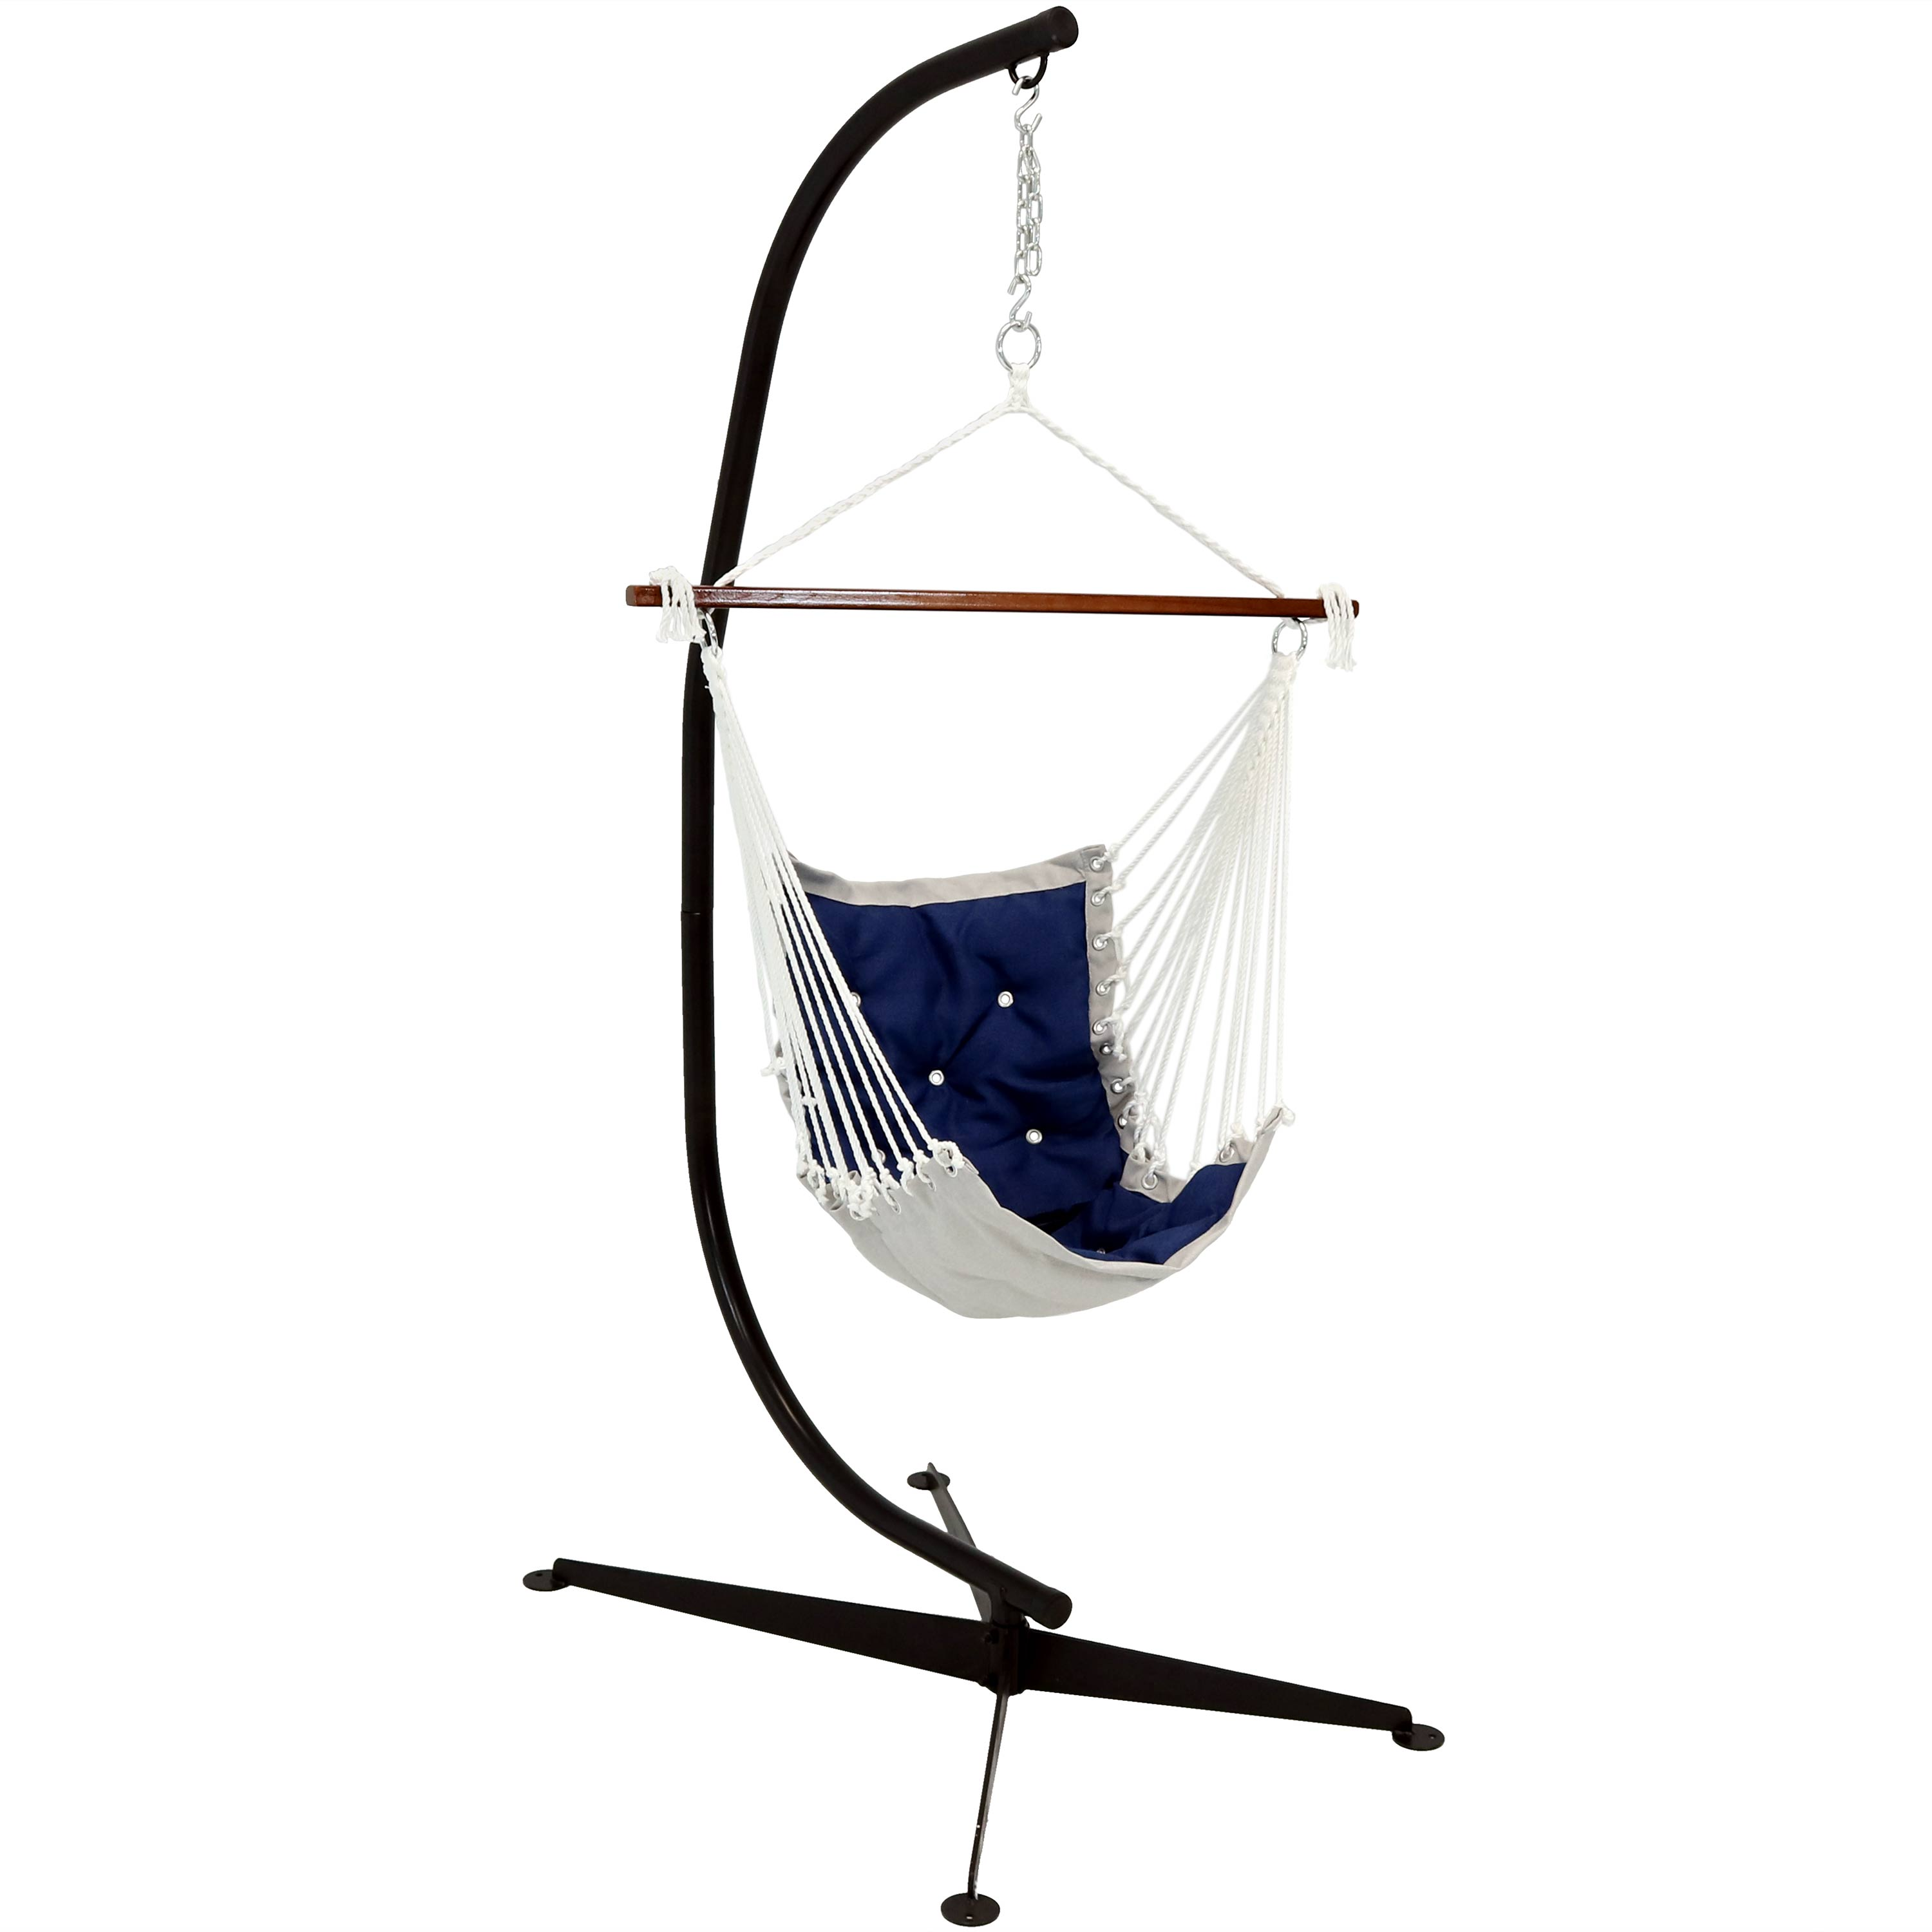 Tufted Hammock Swing Stand Navy Blue Photo